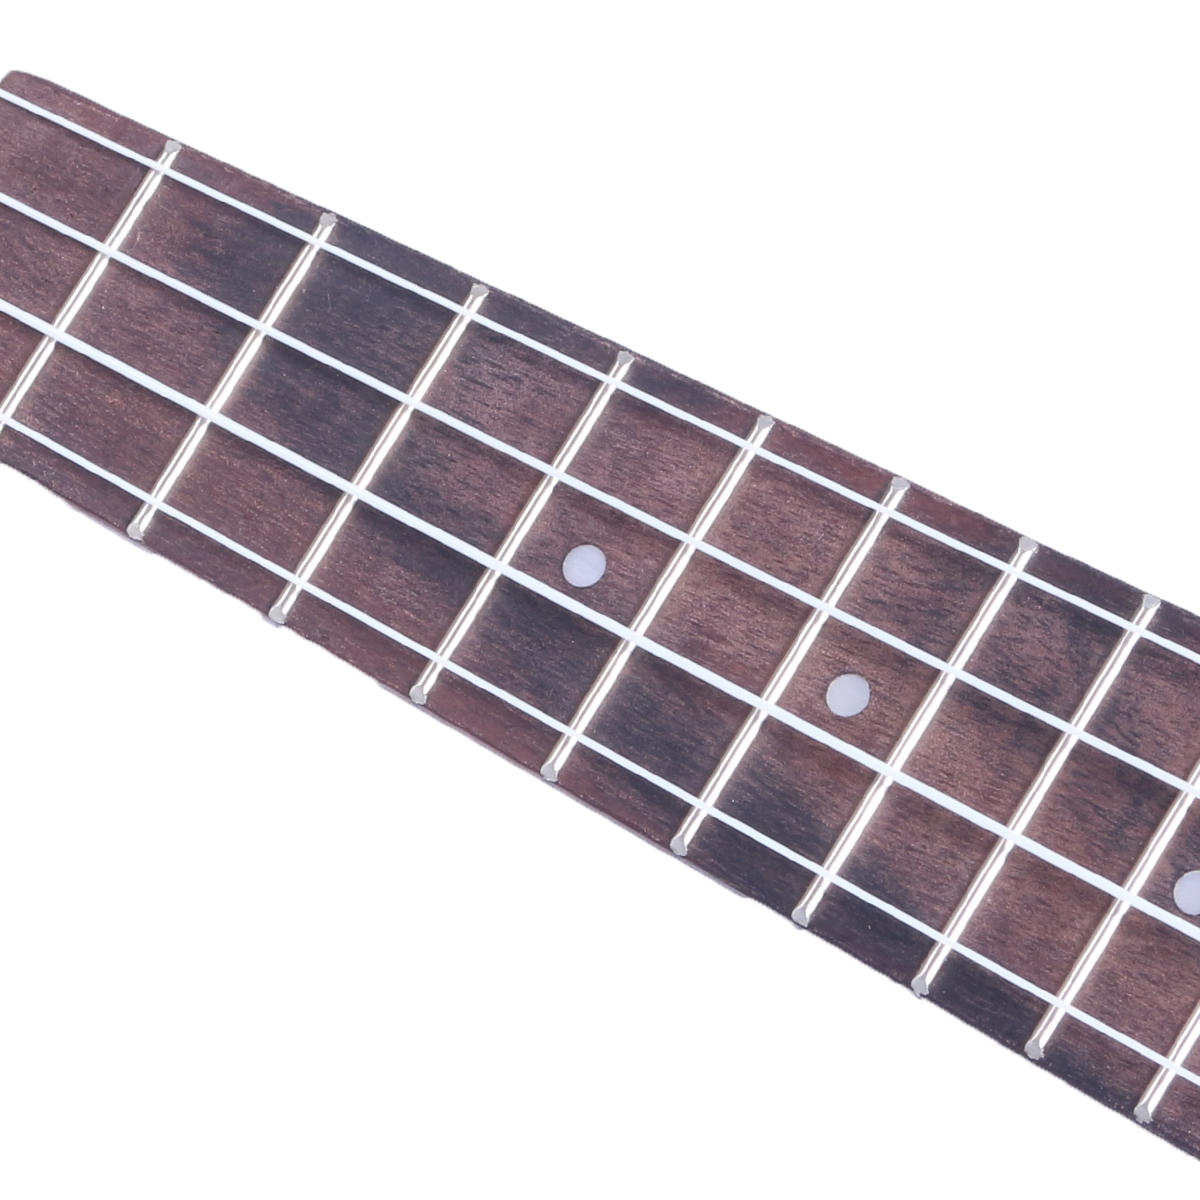 21 Inch 4 Strings 15 Frets Wood Color Mahogany Ukulele Musical Instrument With Guitar picks/Rope - 8